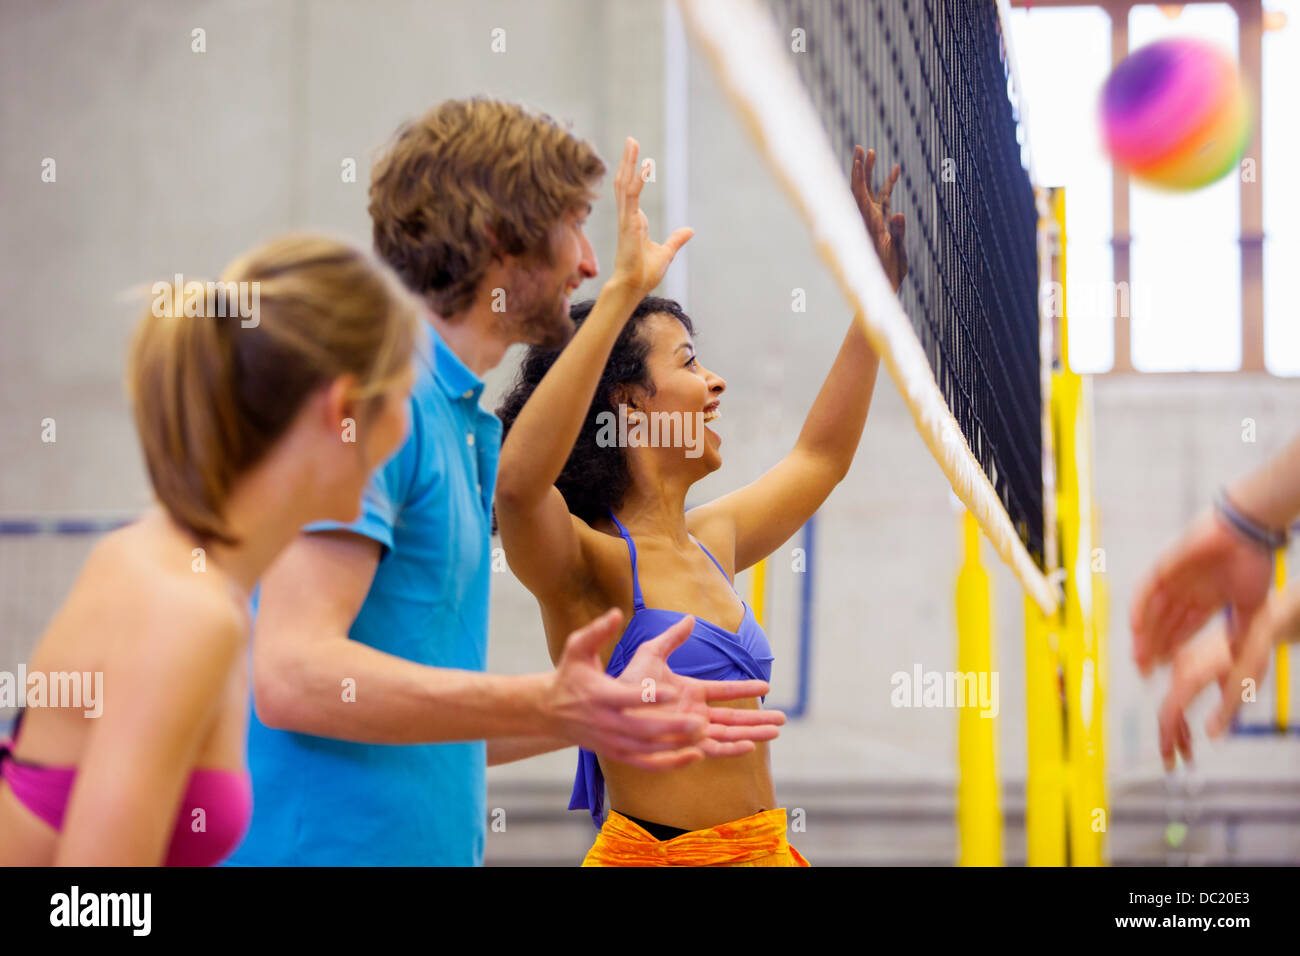 Friends enjoying indoor beach volleyball - Stock Image